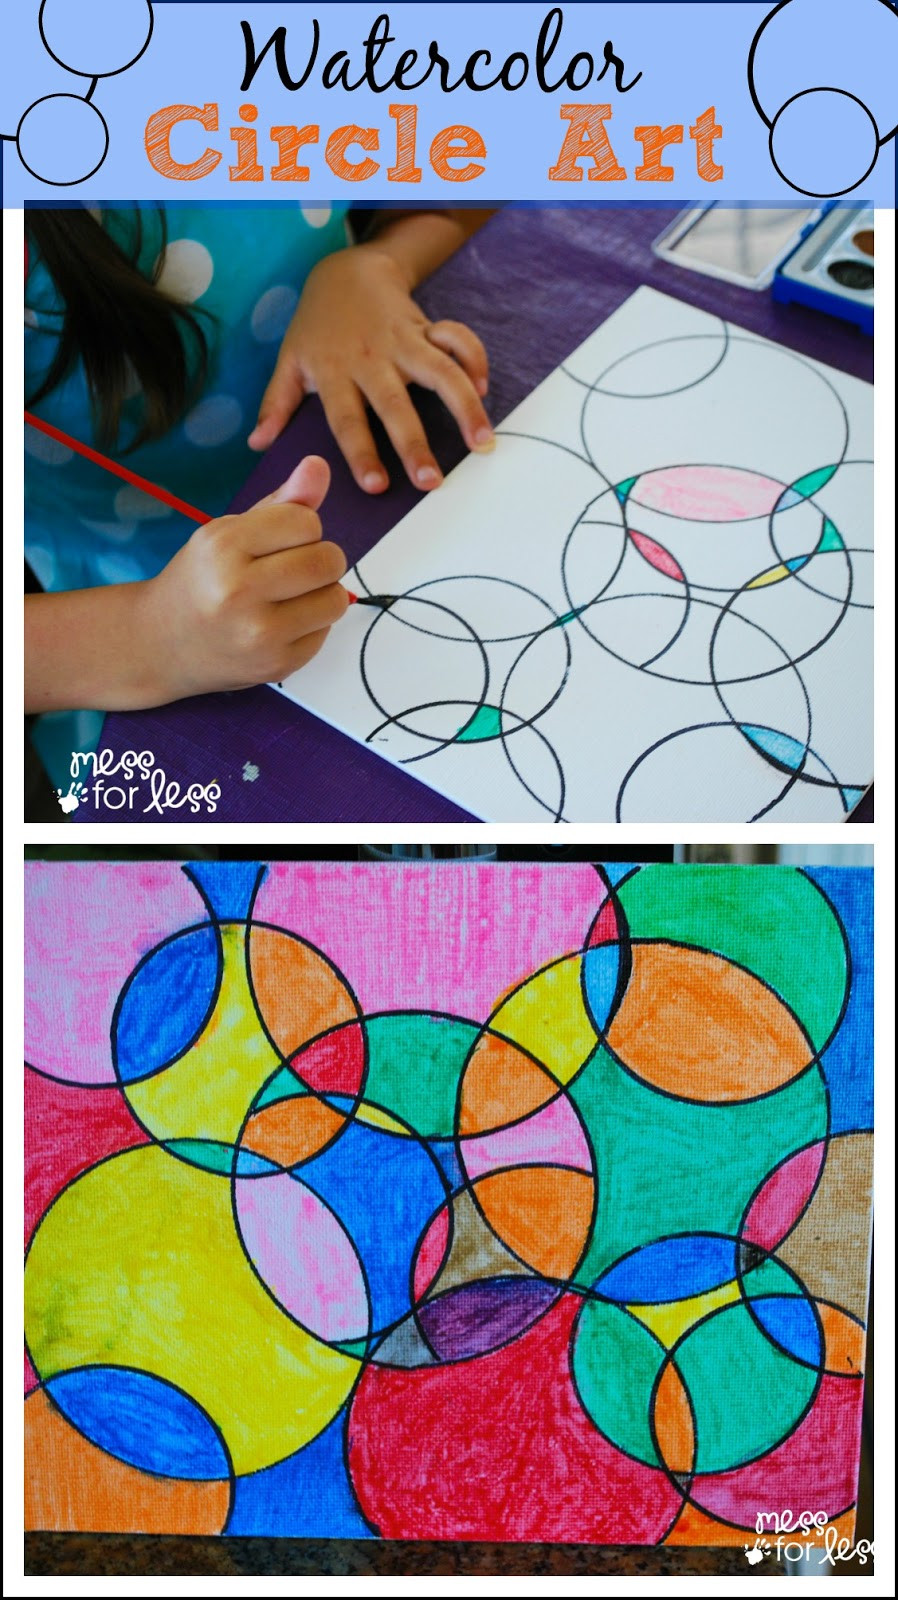 Fun Art Activities For Kids  Watercolor Circle Art Mess for Less